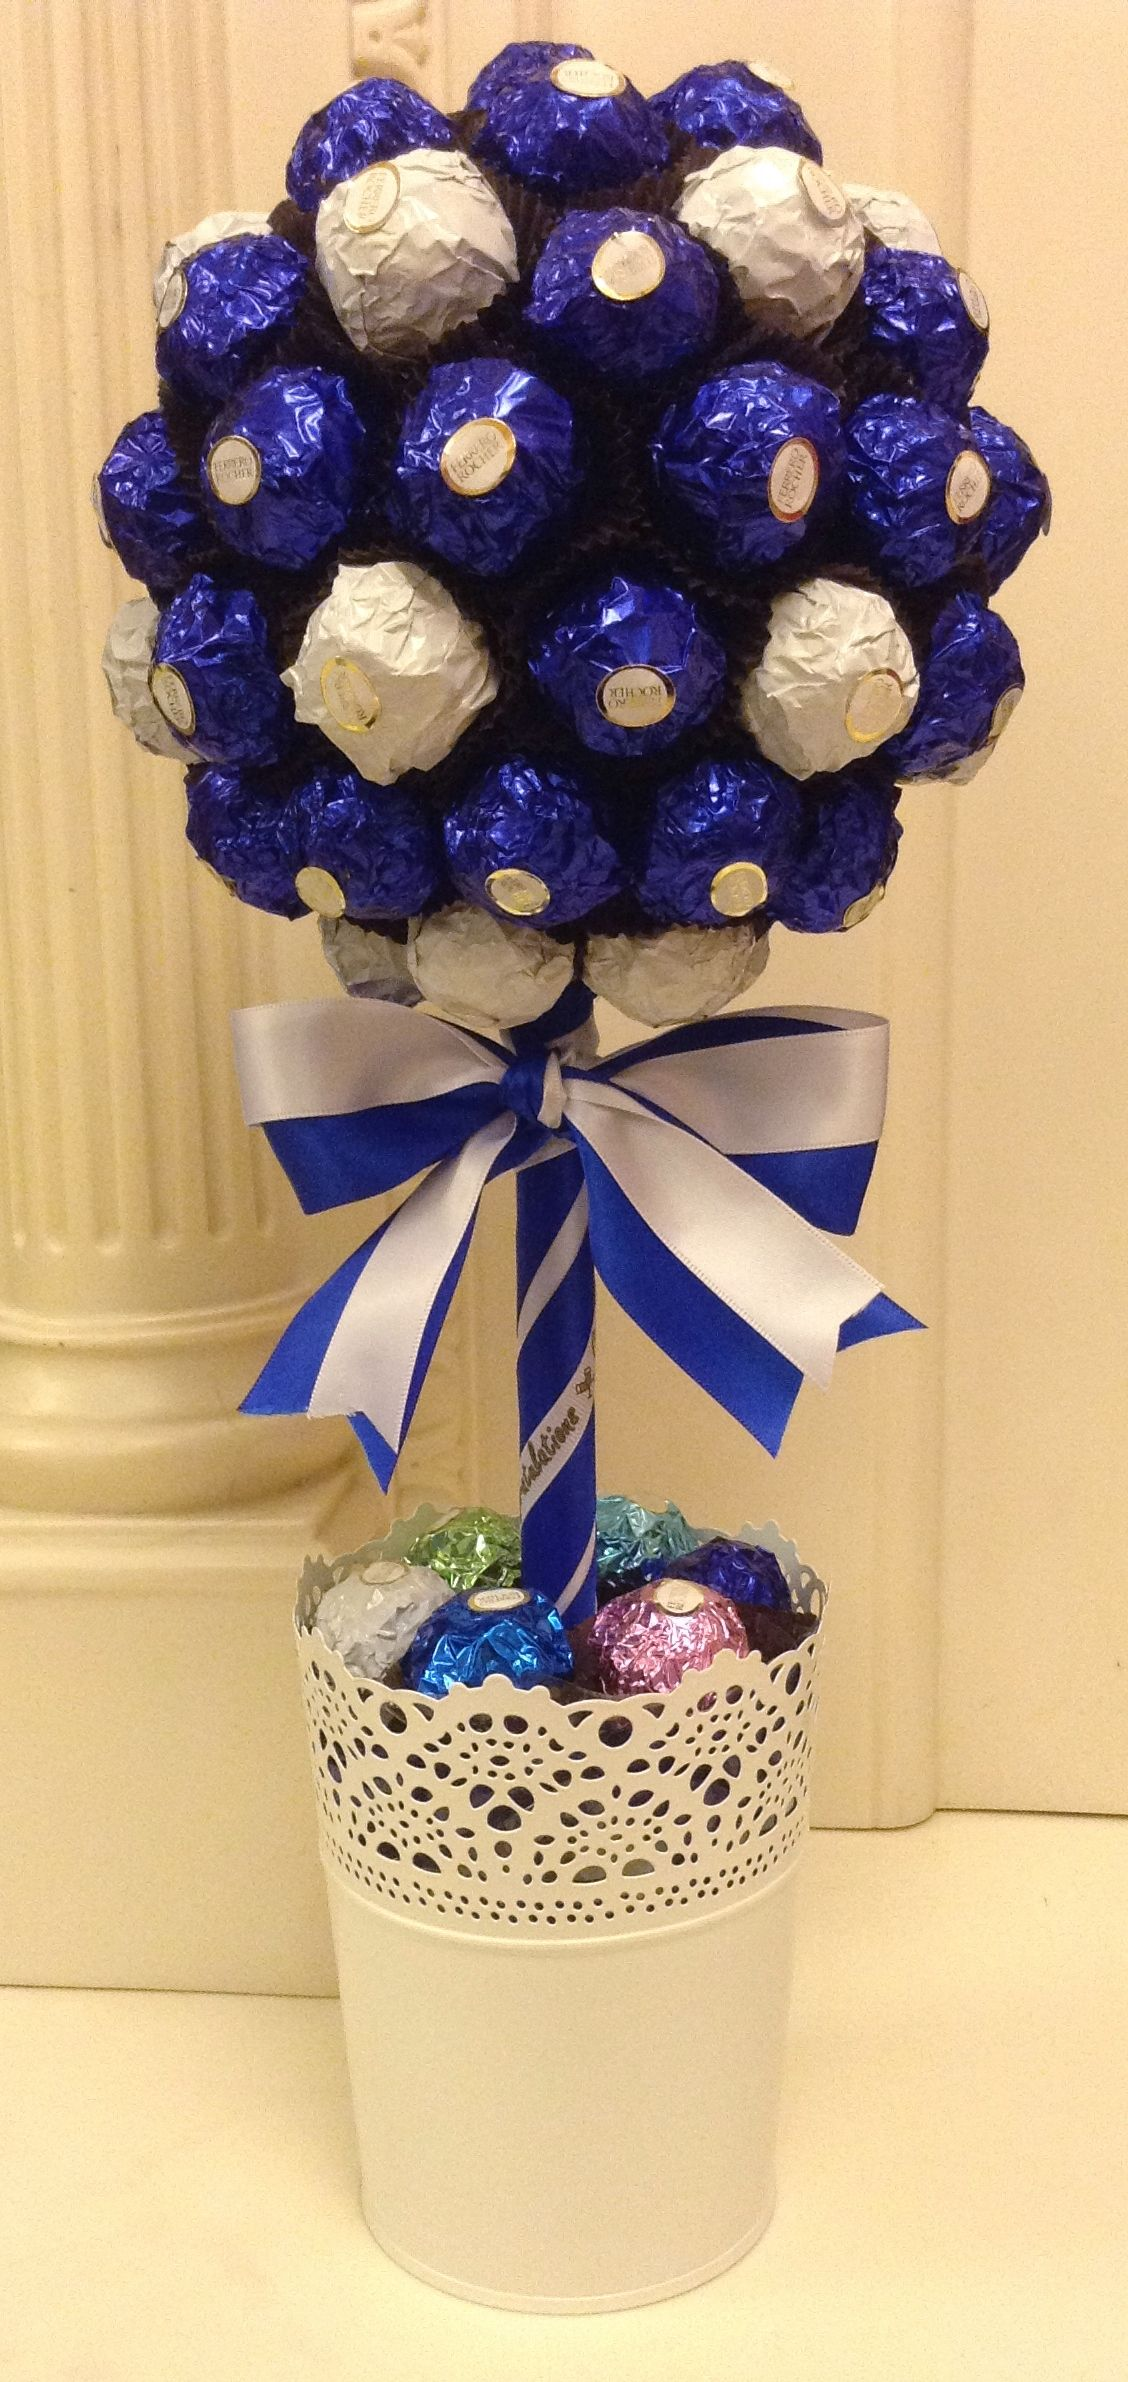 Blue and white ferrero rocher candy tree other colours available blue and white ferrero rocher candy tree other colours available candytreescambridge izmirmasajfo Images